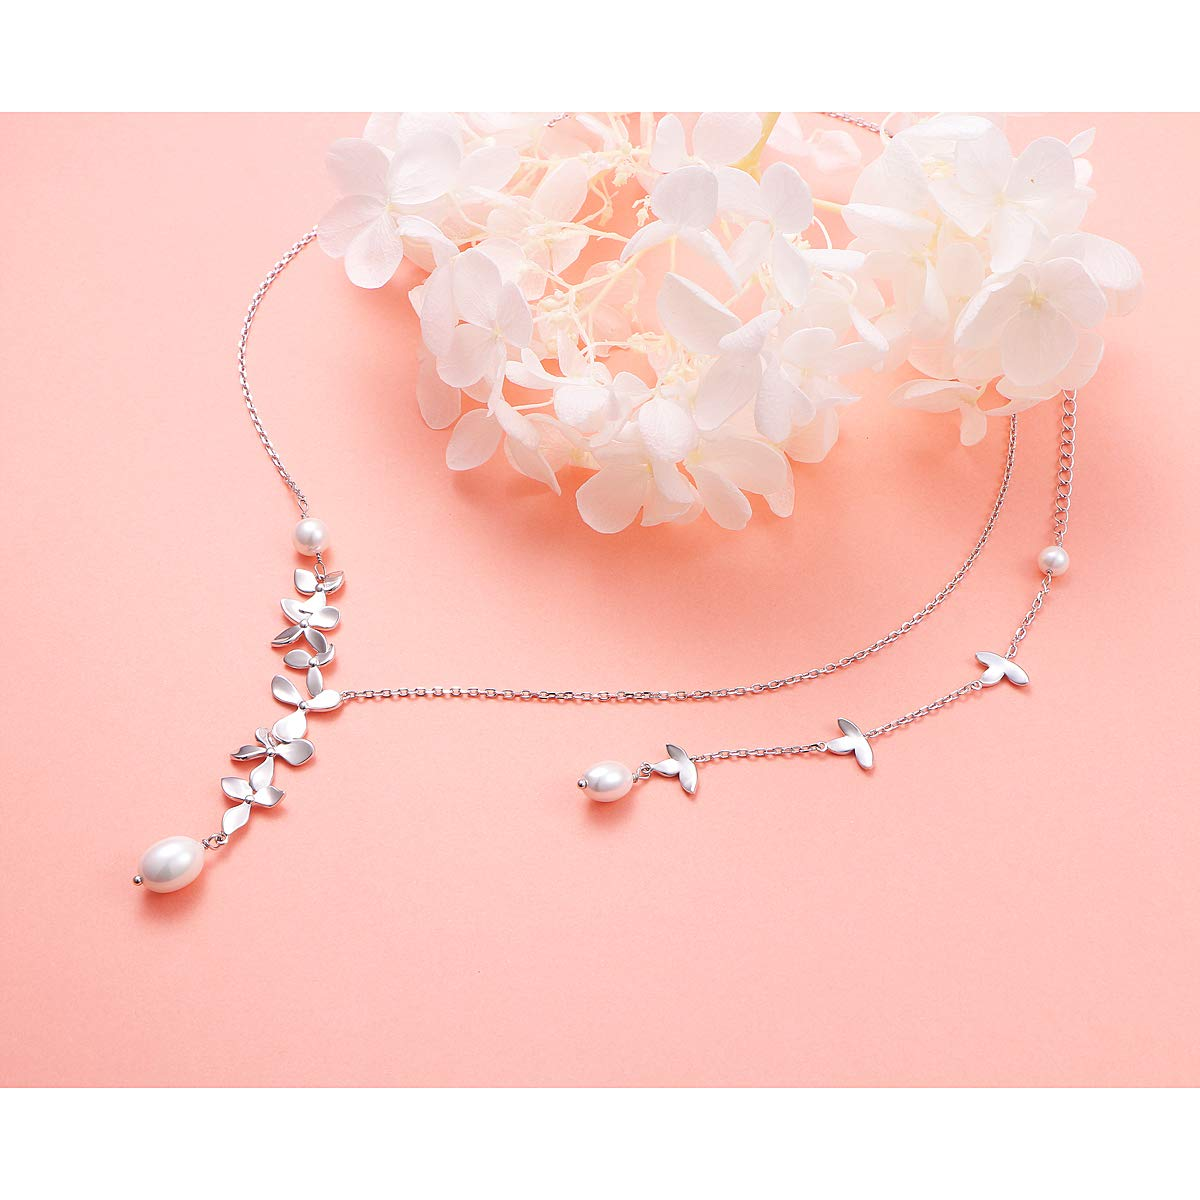 JZMSJF S925 Sterling Silver Back Drop Necklace Women Handmade Backdrop Body Chain Orchid Flower Necklace Ring Bracelet Wedding Jewelry Set Backless Dress Accessiories